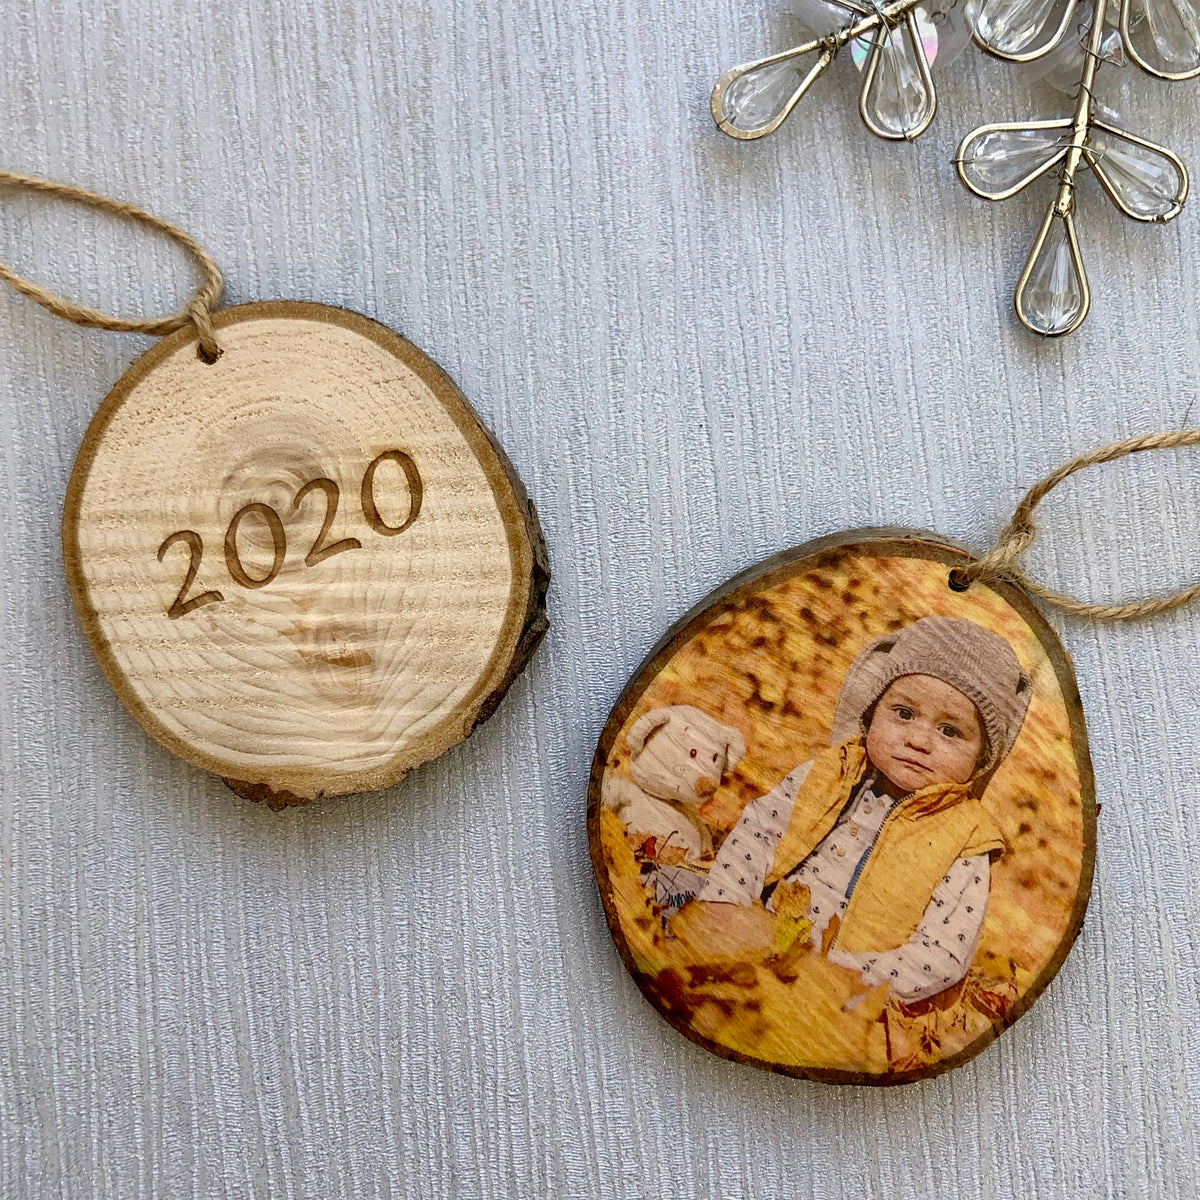 Two wood slice christmas tree decorations, one has a photo of a baby, the other has the 2020 engraved.